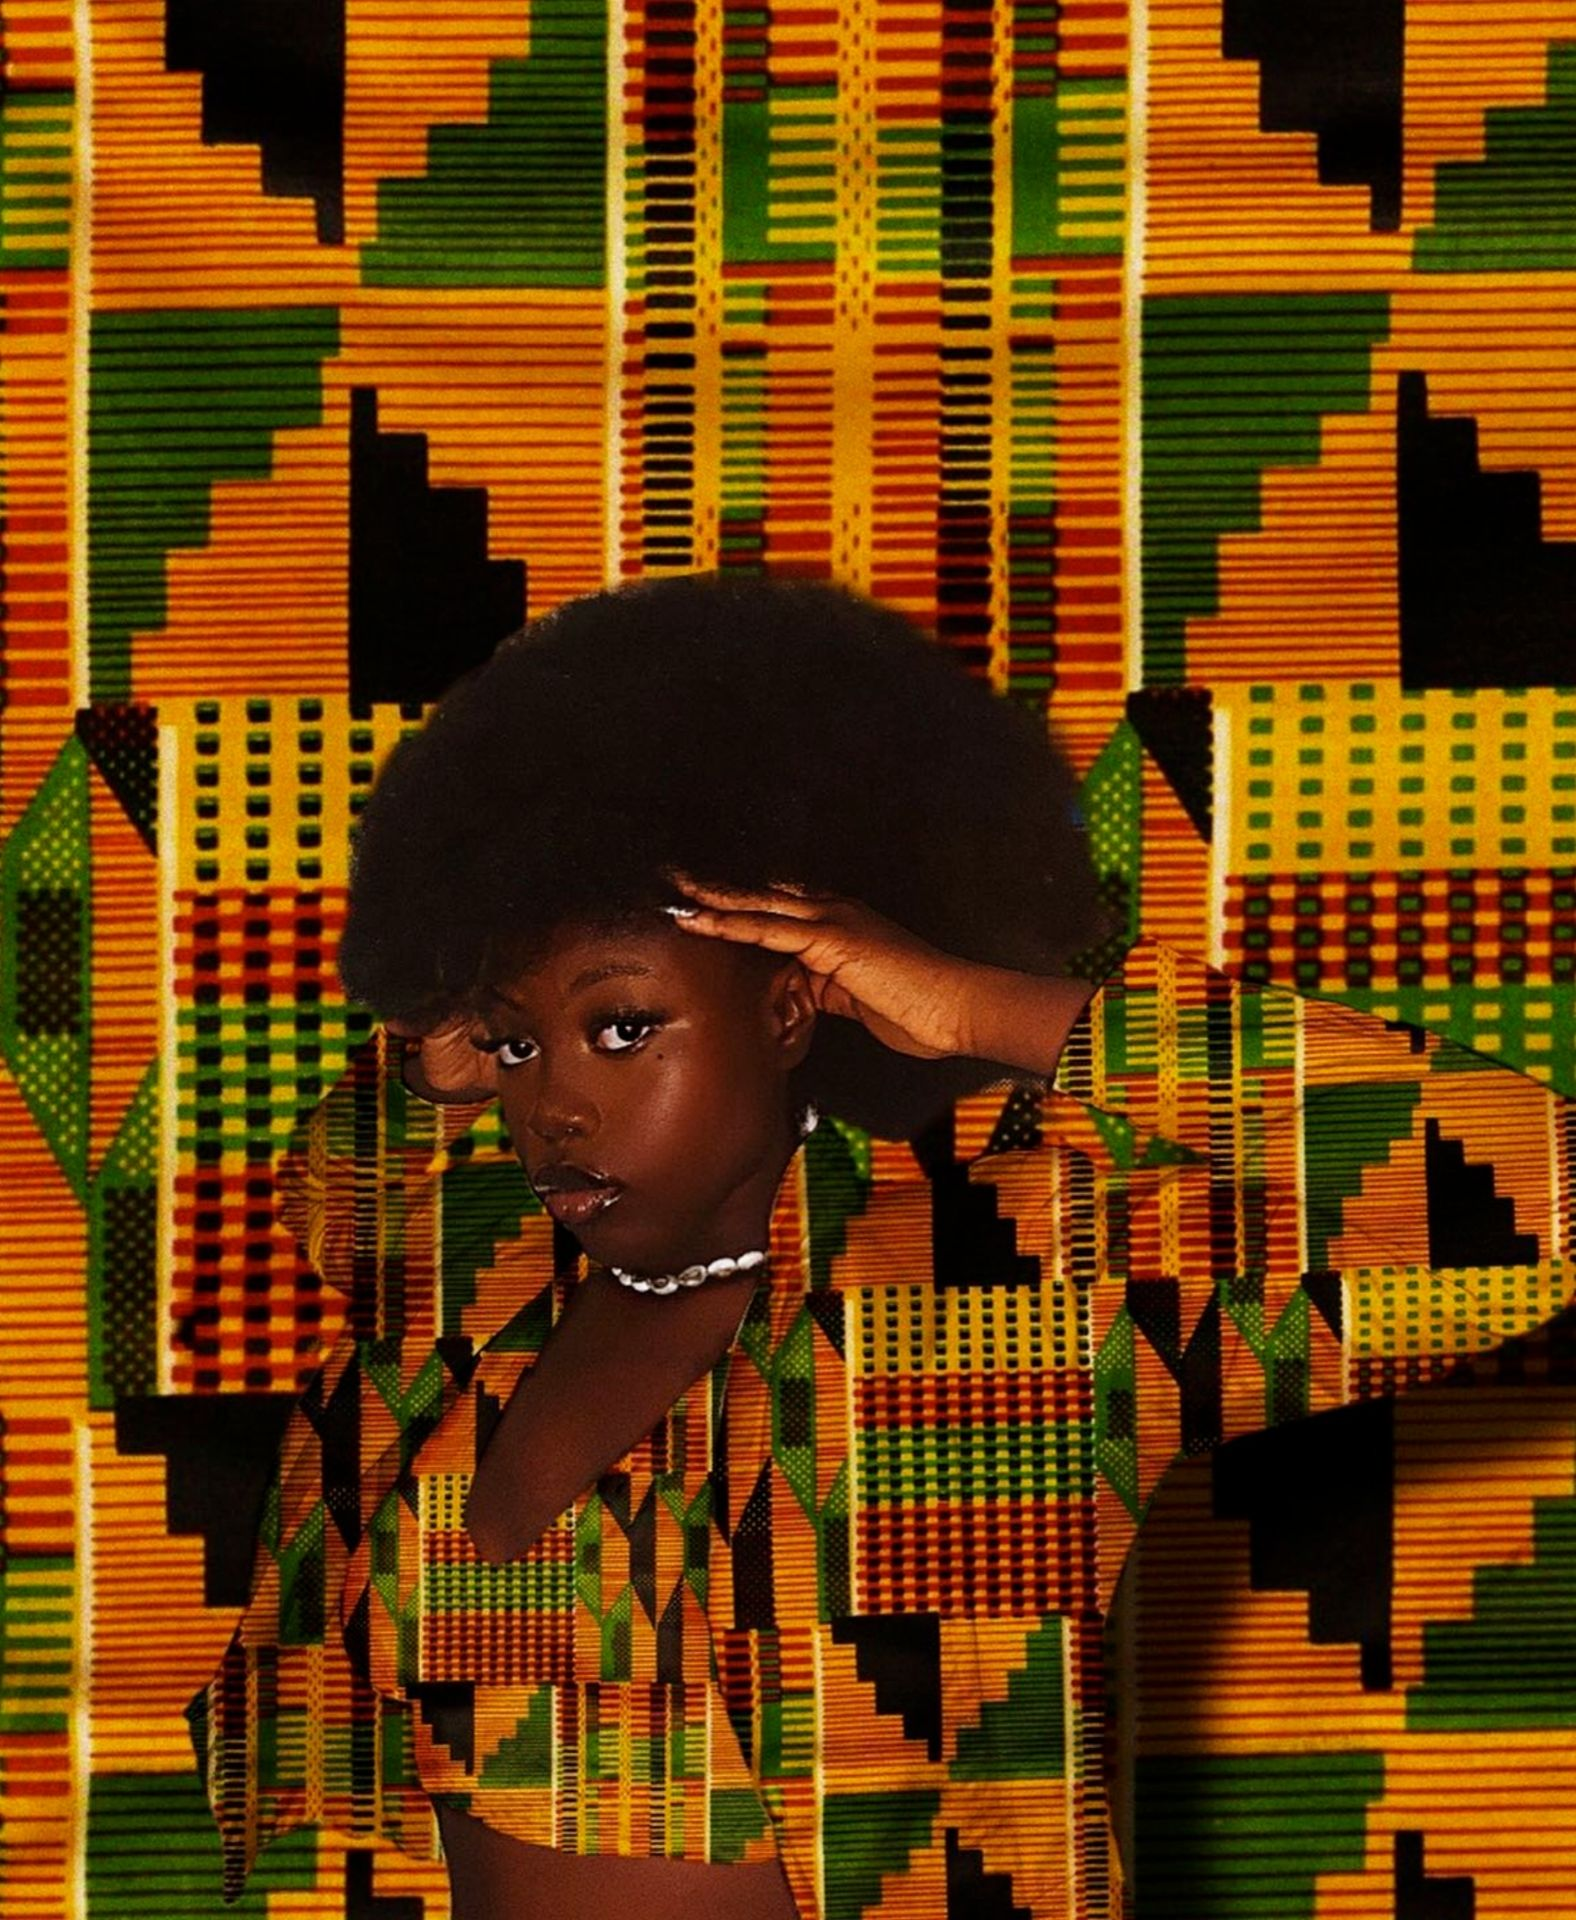 A photograph of a black woman posing in colorful kente cloth in front of a kente cloth background